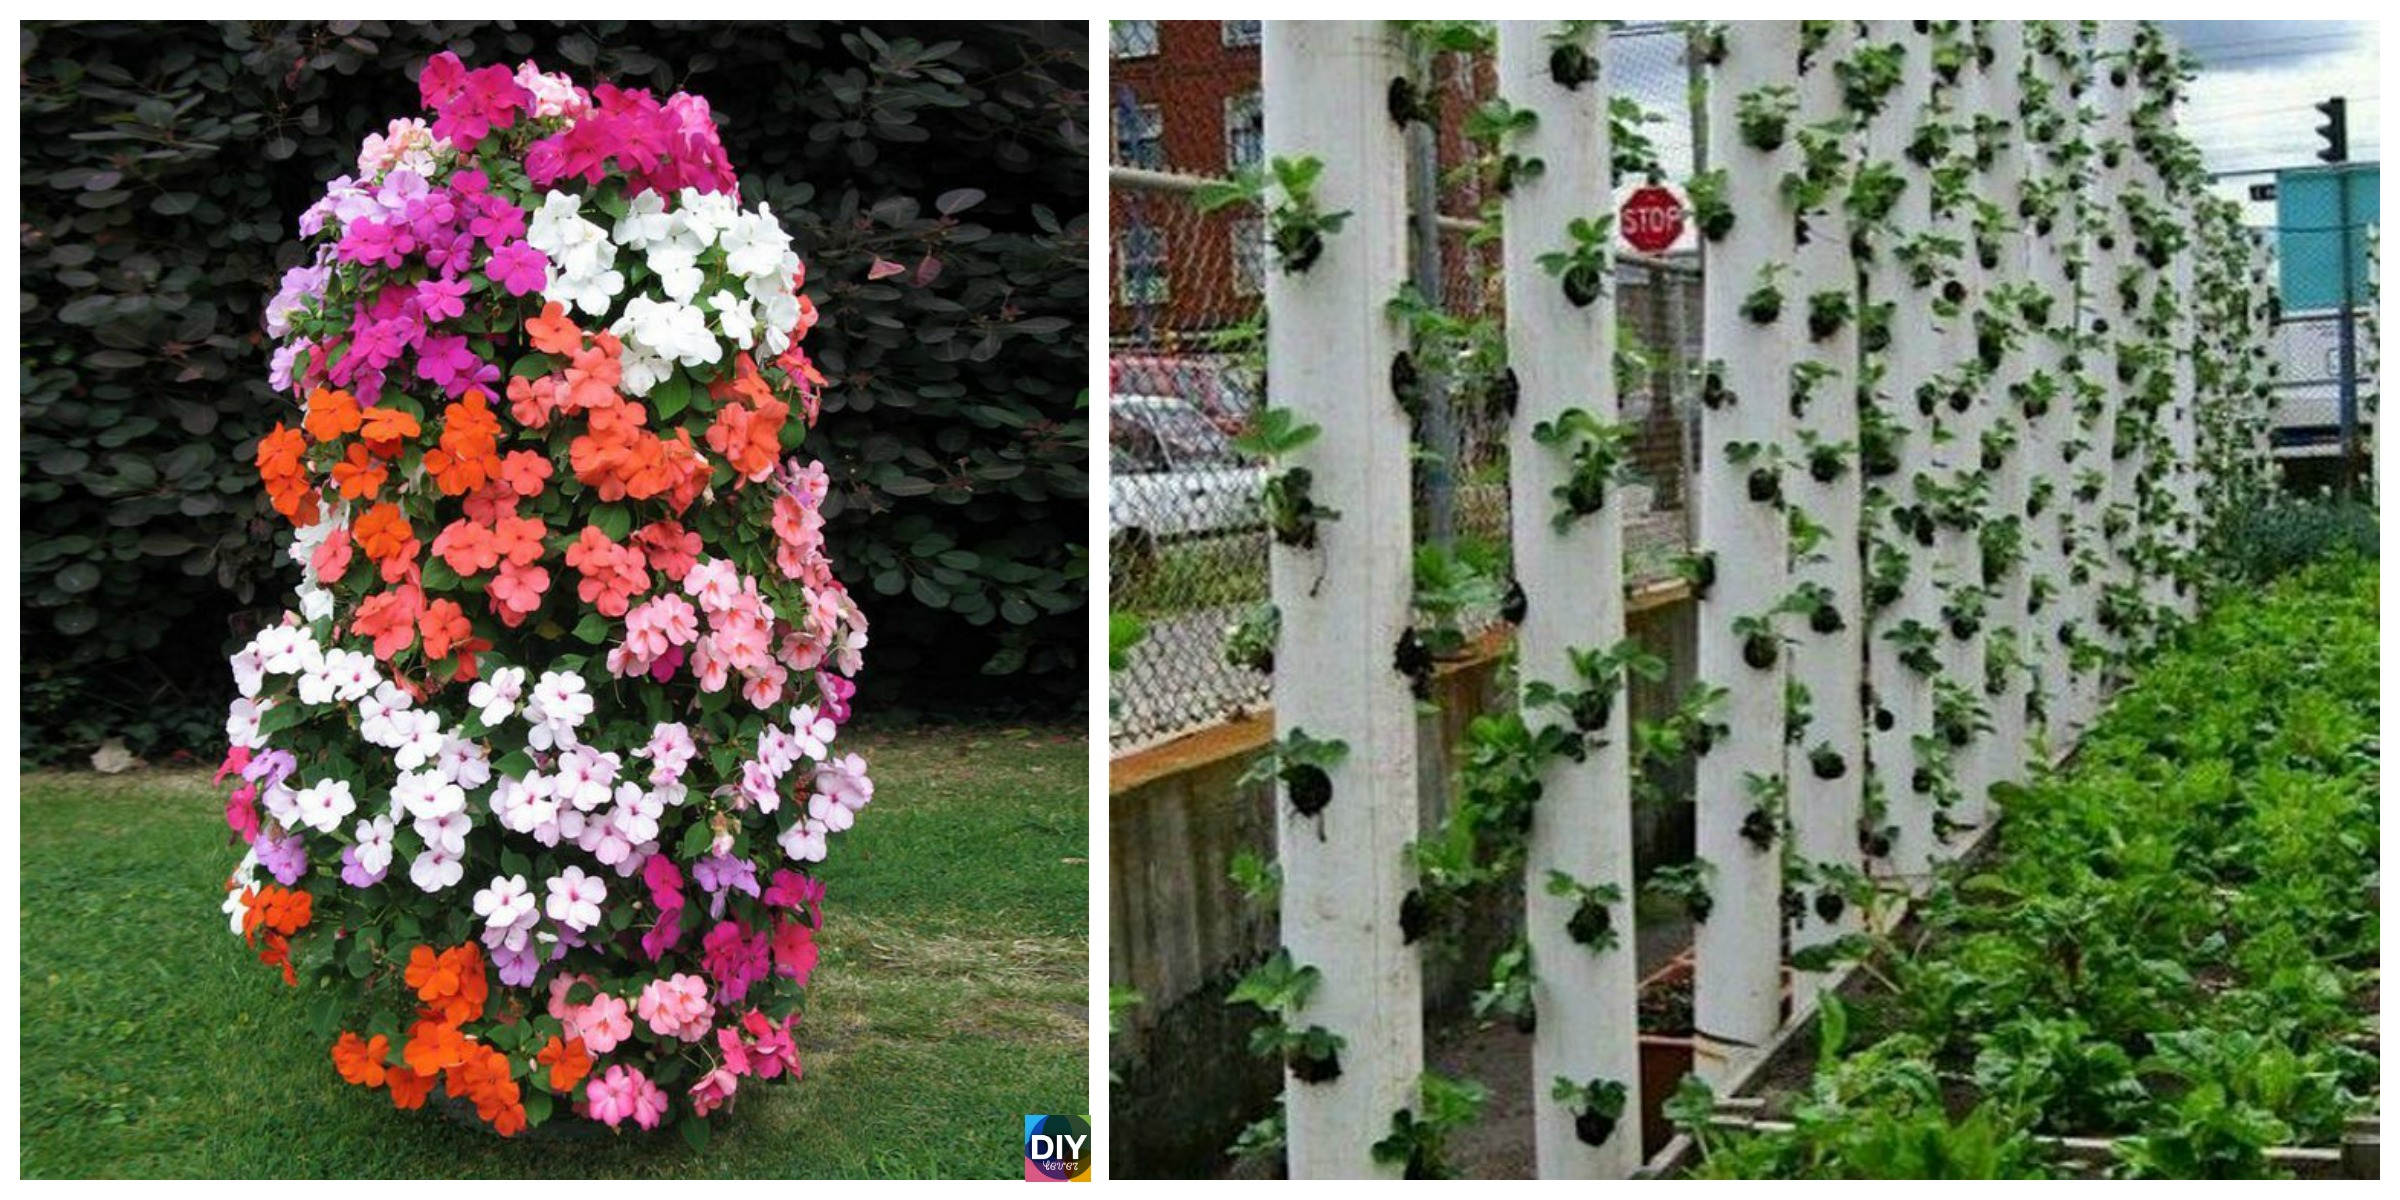 DIY Vertical Planter – Step by Step Tutorial